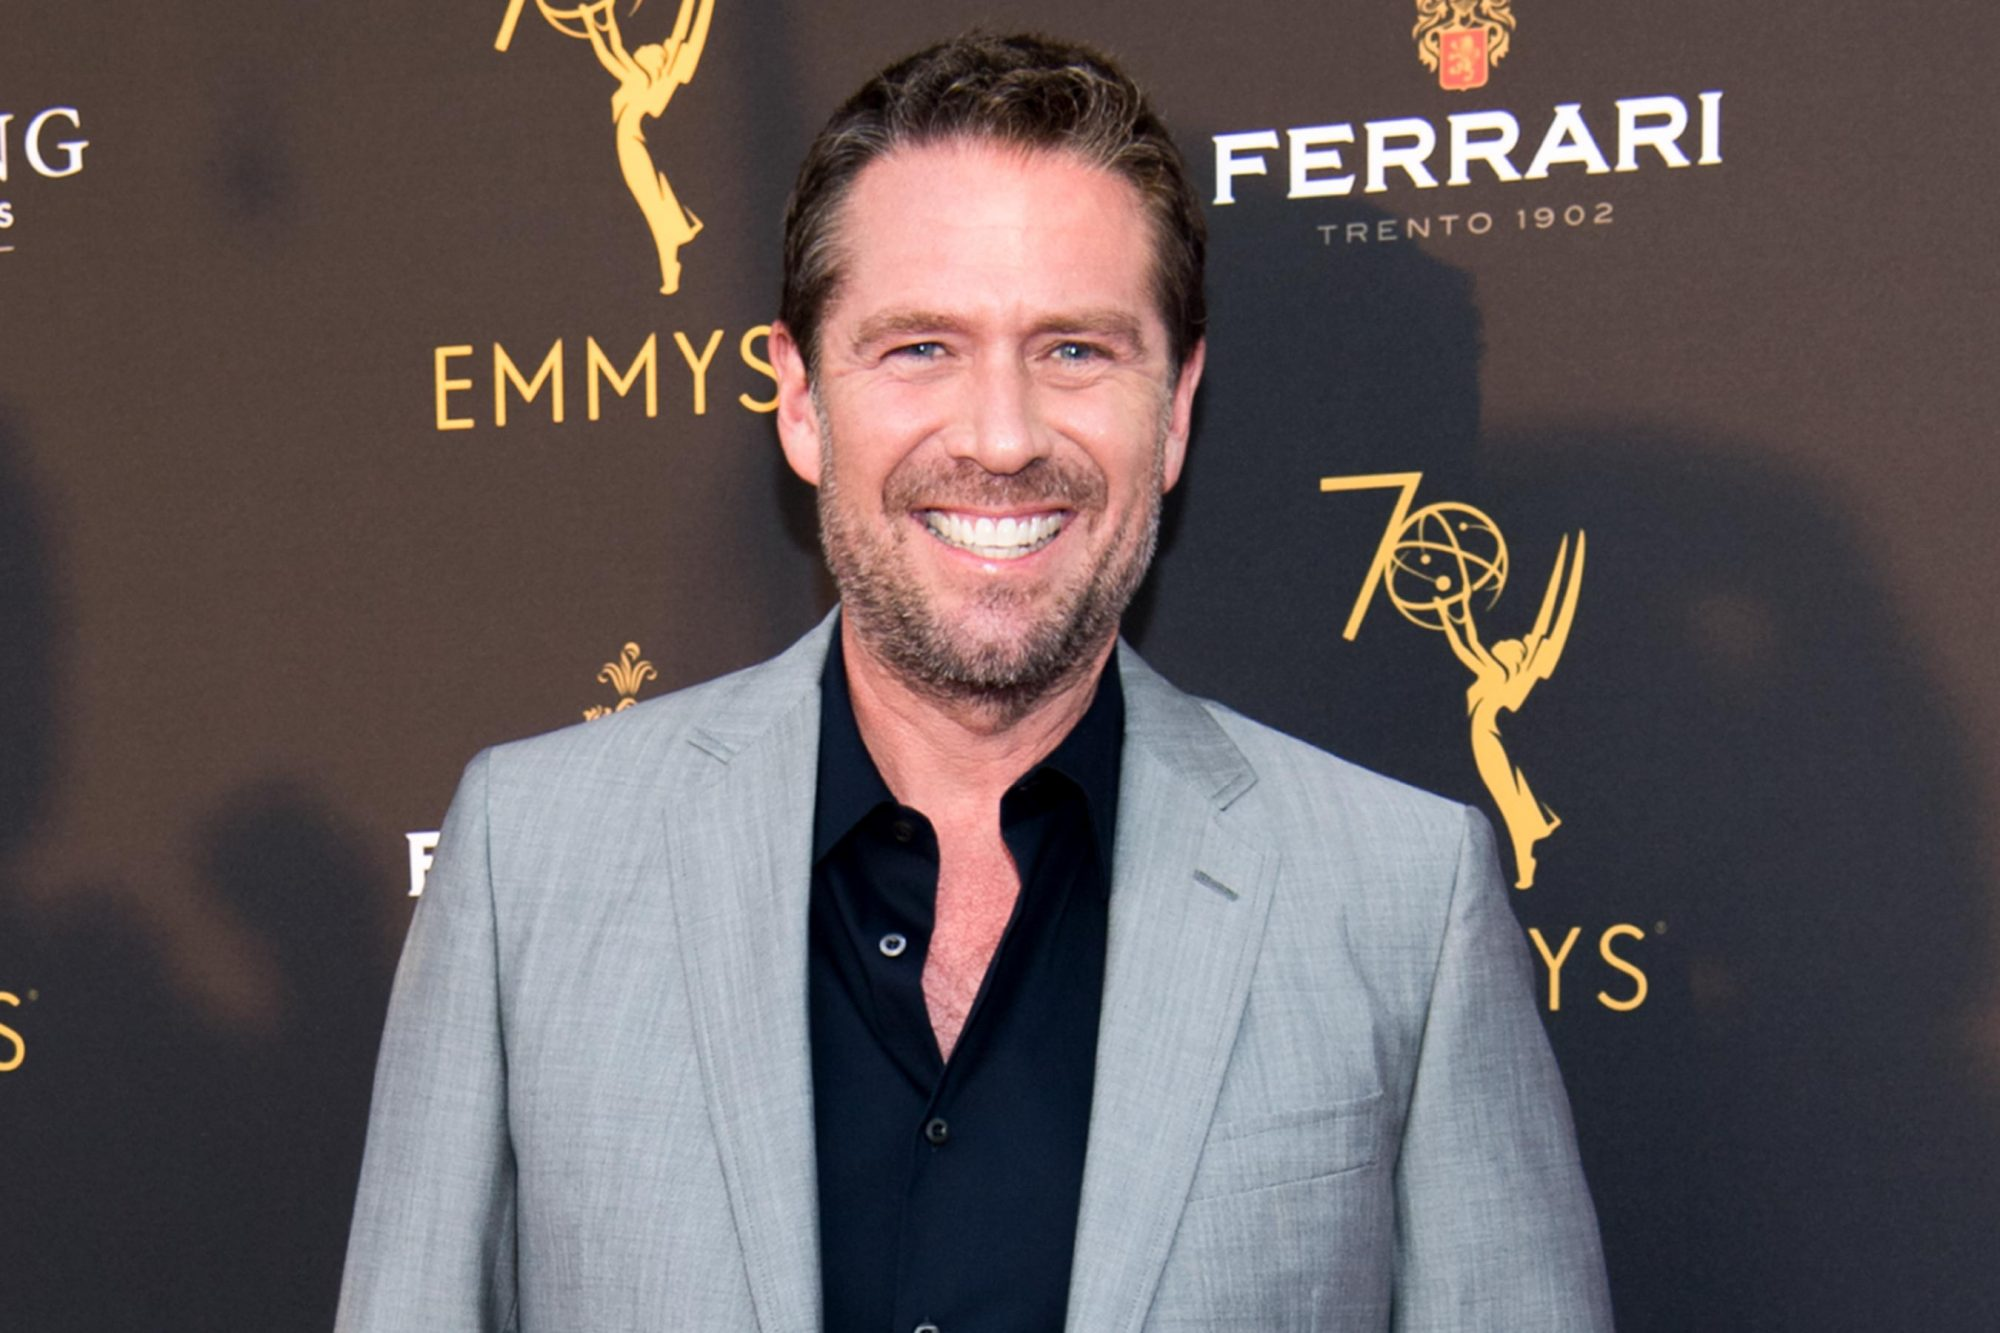 LOS ANGELES, CA - AUGUST 20: Actor Alexis Denisof attends the Television Academy's Performers Peer Group Celebration at NeueHouse Hollywood on August 20, 2018 in Los Angeles, California. (Photo by Emma McIntyre/Getty Images)